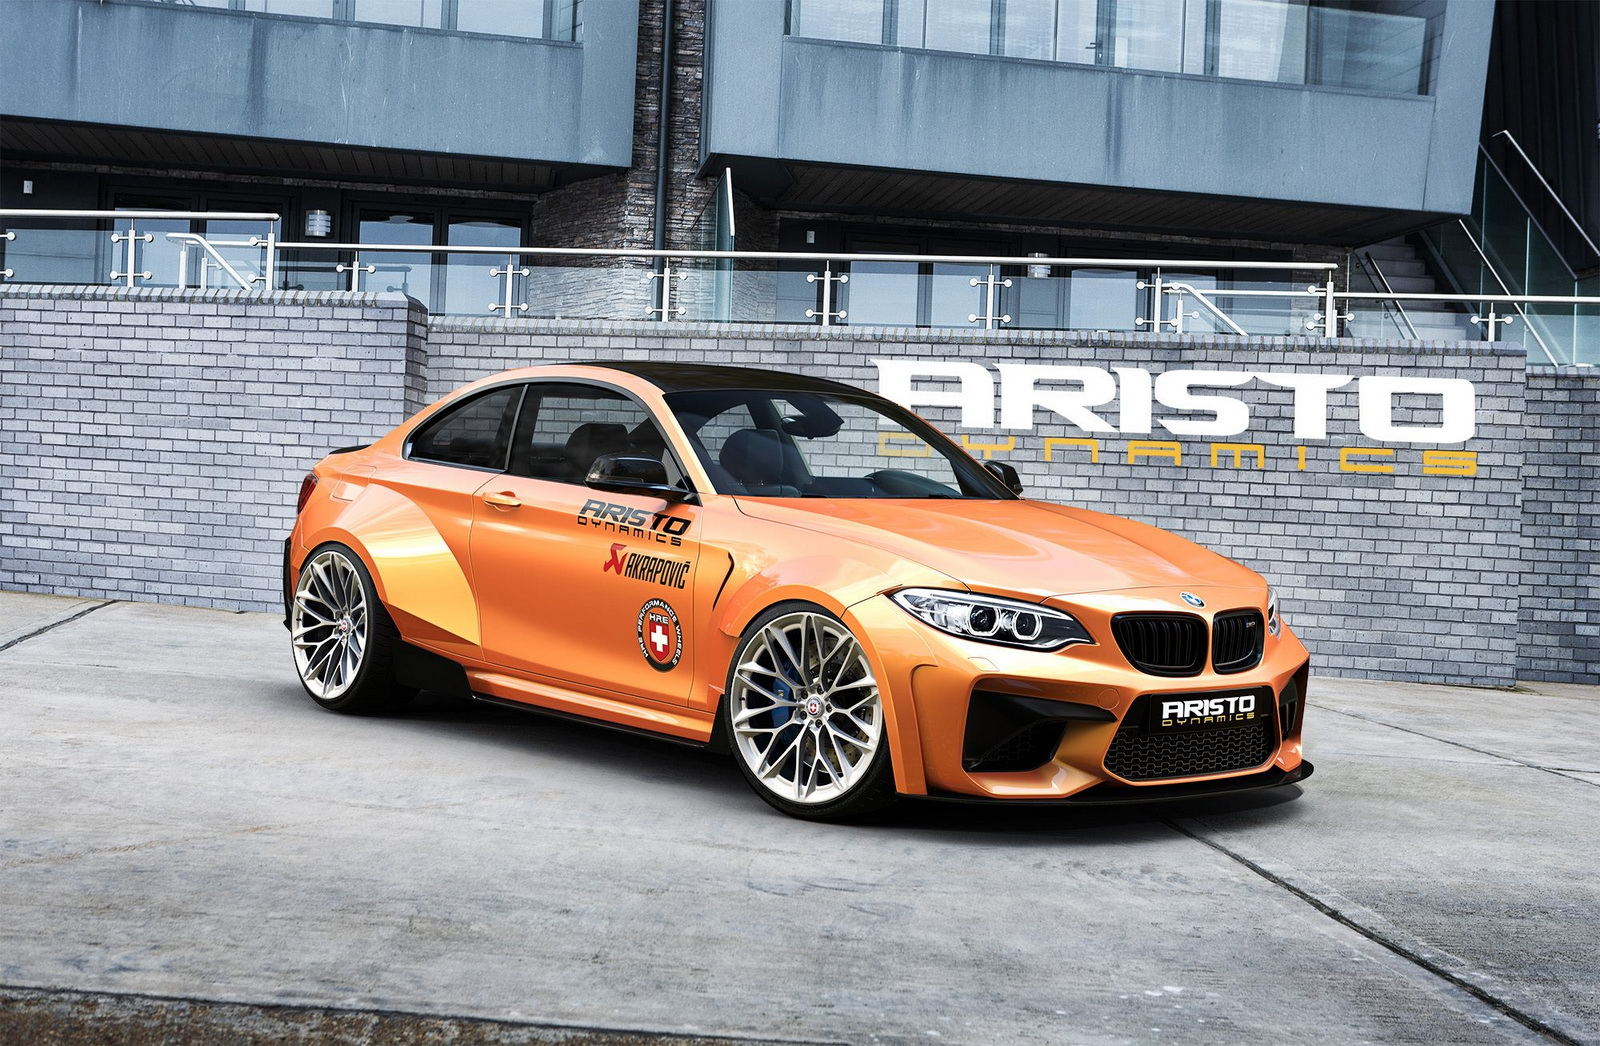 2016 bmw m2 coupe by aristo dynamics looks pretty menacing bmw car tuning. Black Bedroom Furniture Sets. Home Design Ideas